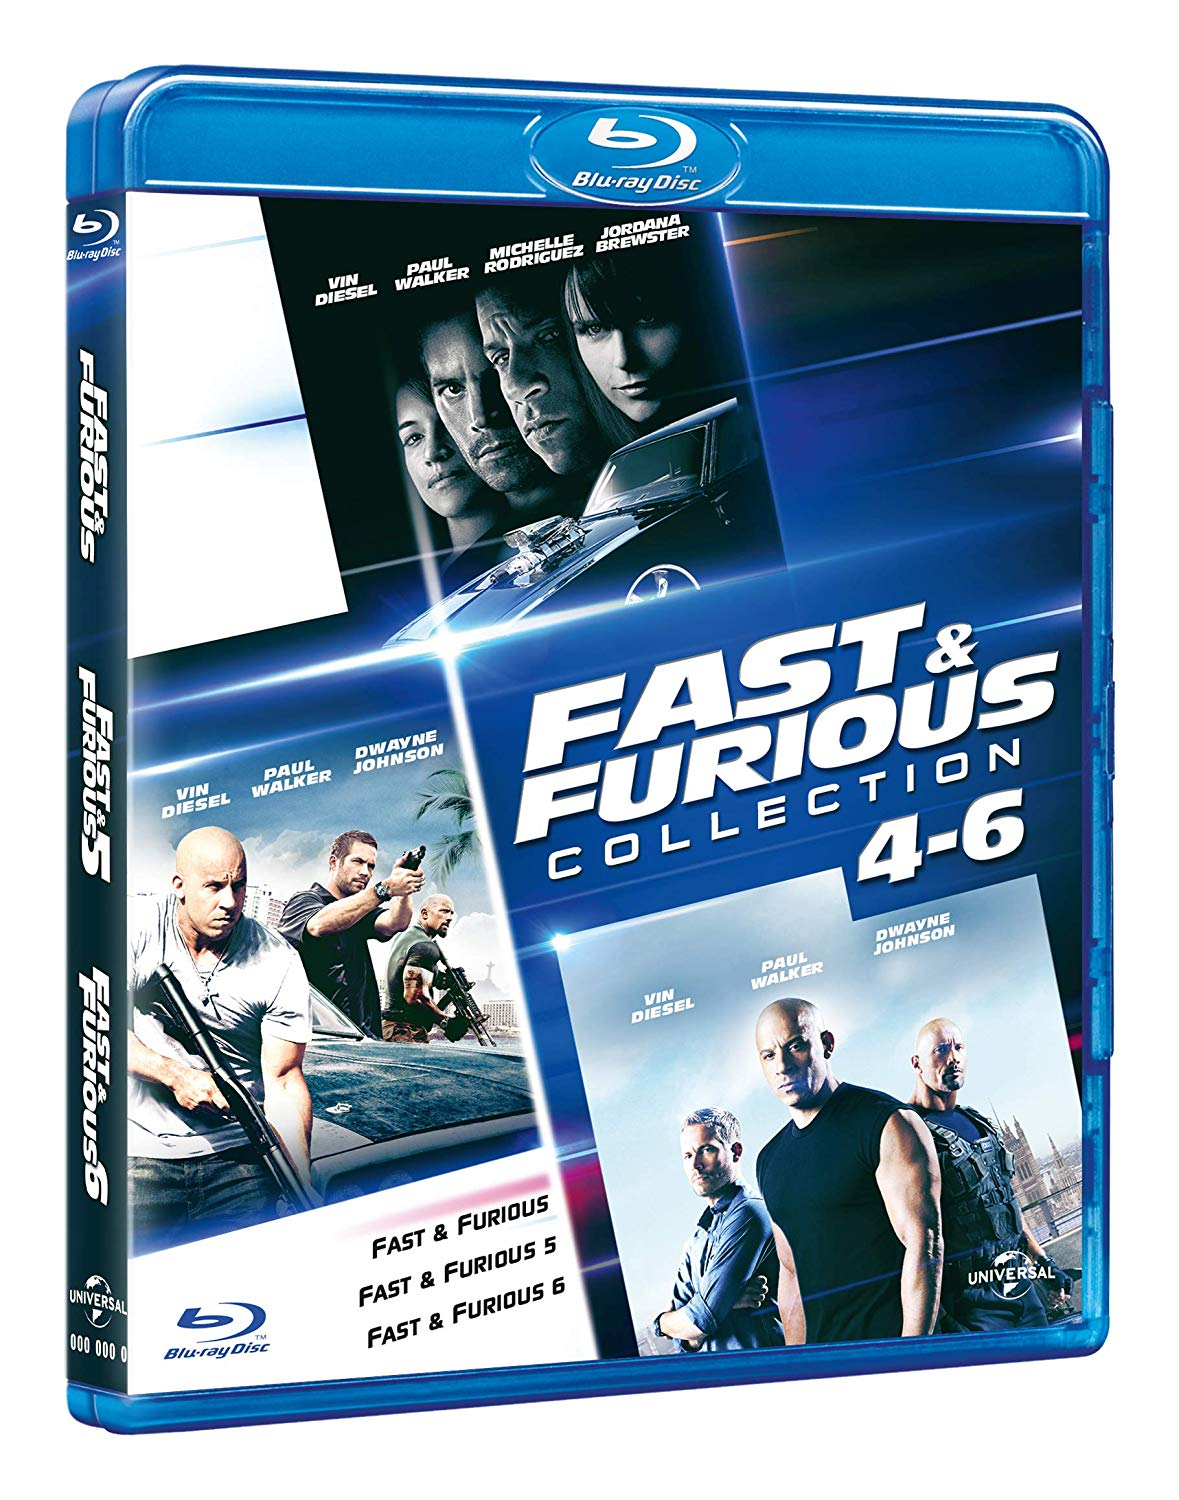 COF.FAST & FURIOUS FAMILY COLLECTION (3 BLU-RAY)